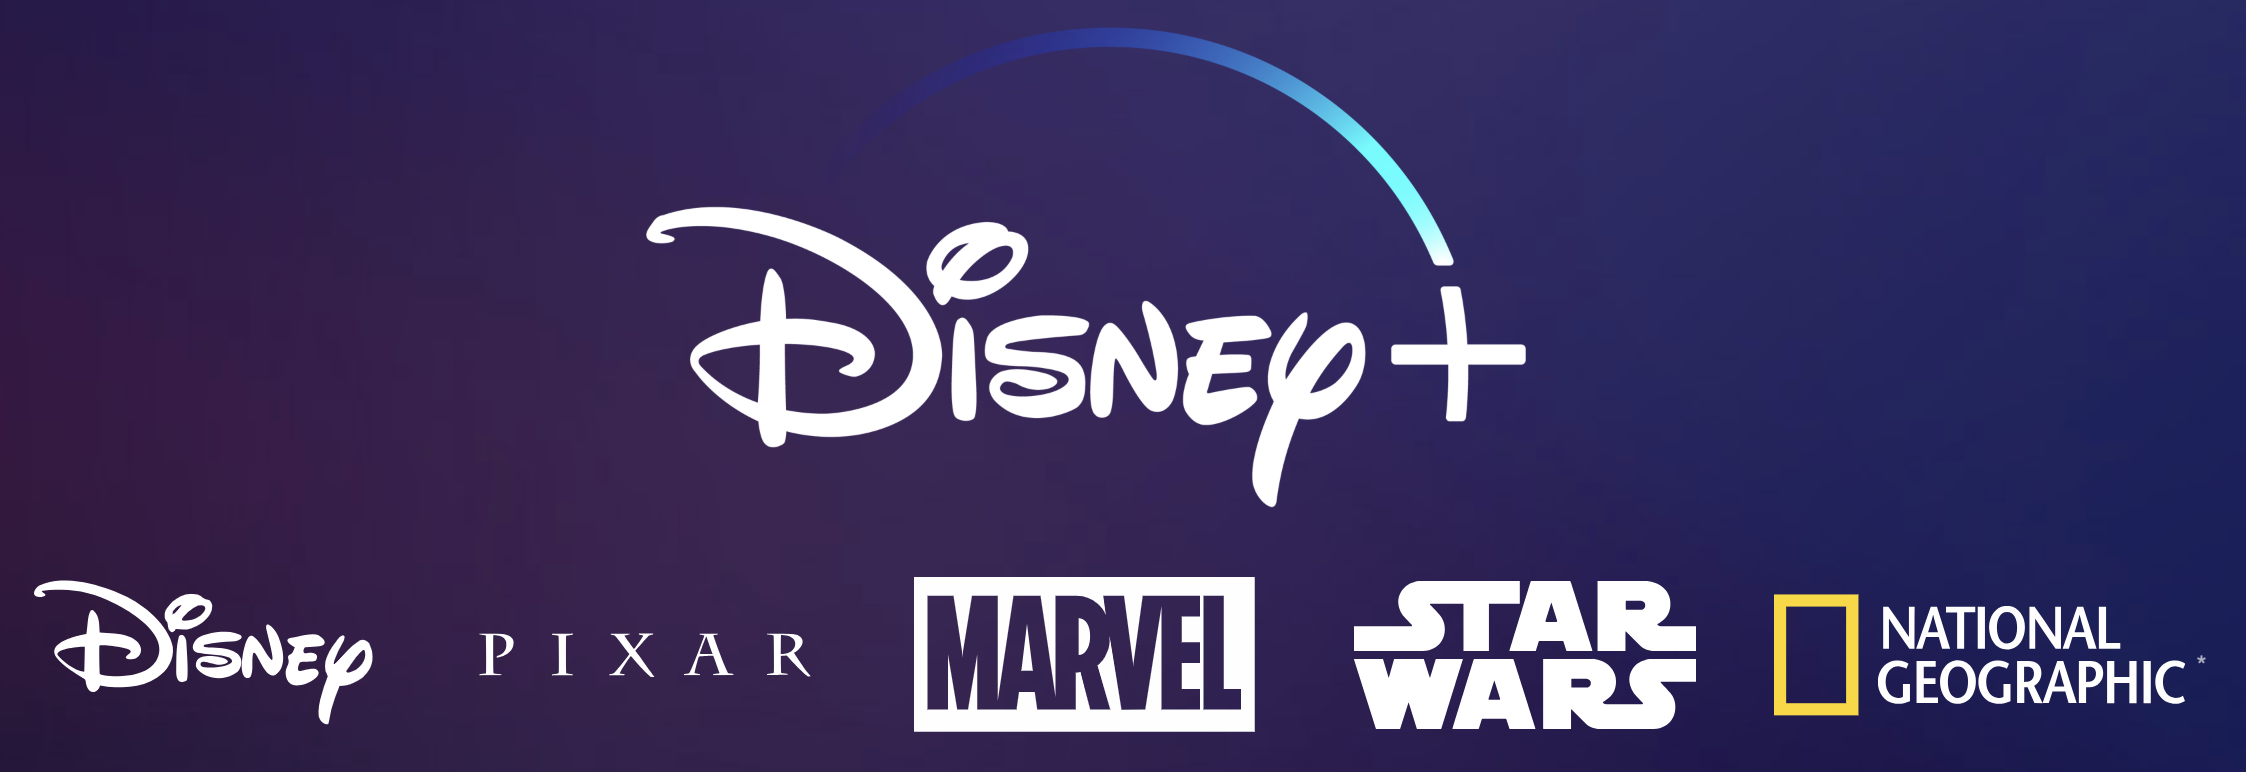 Netflix and Disney Era Comes to an End